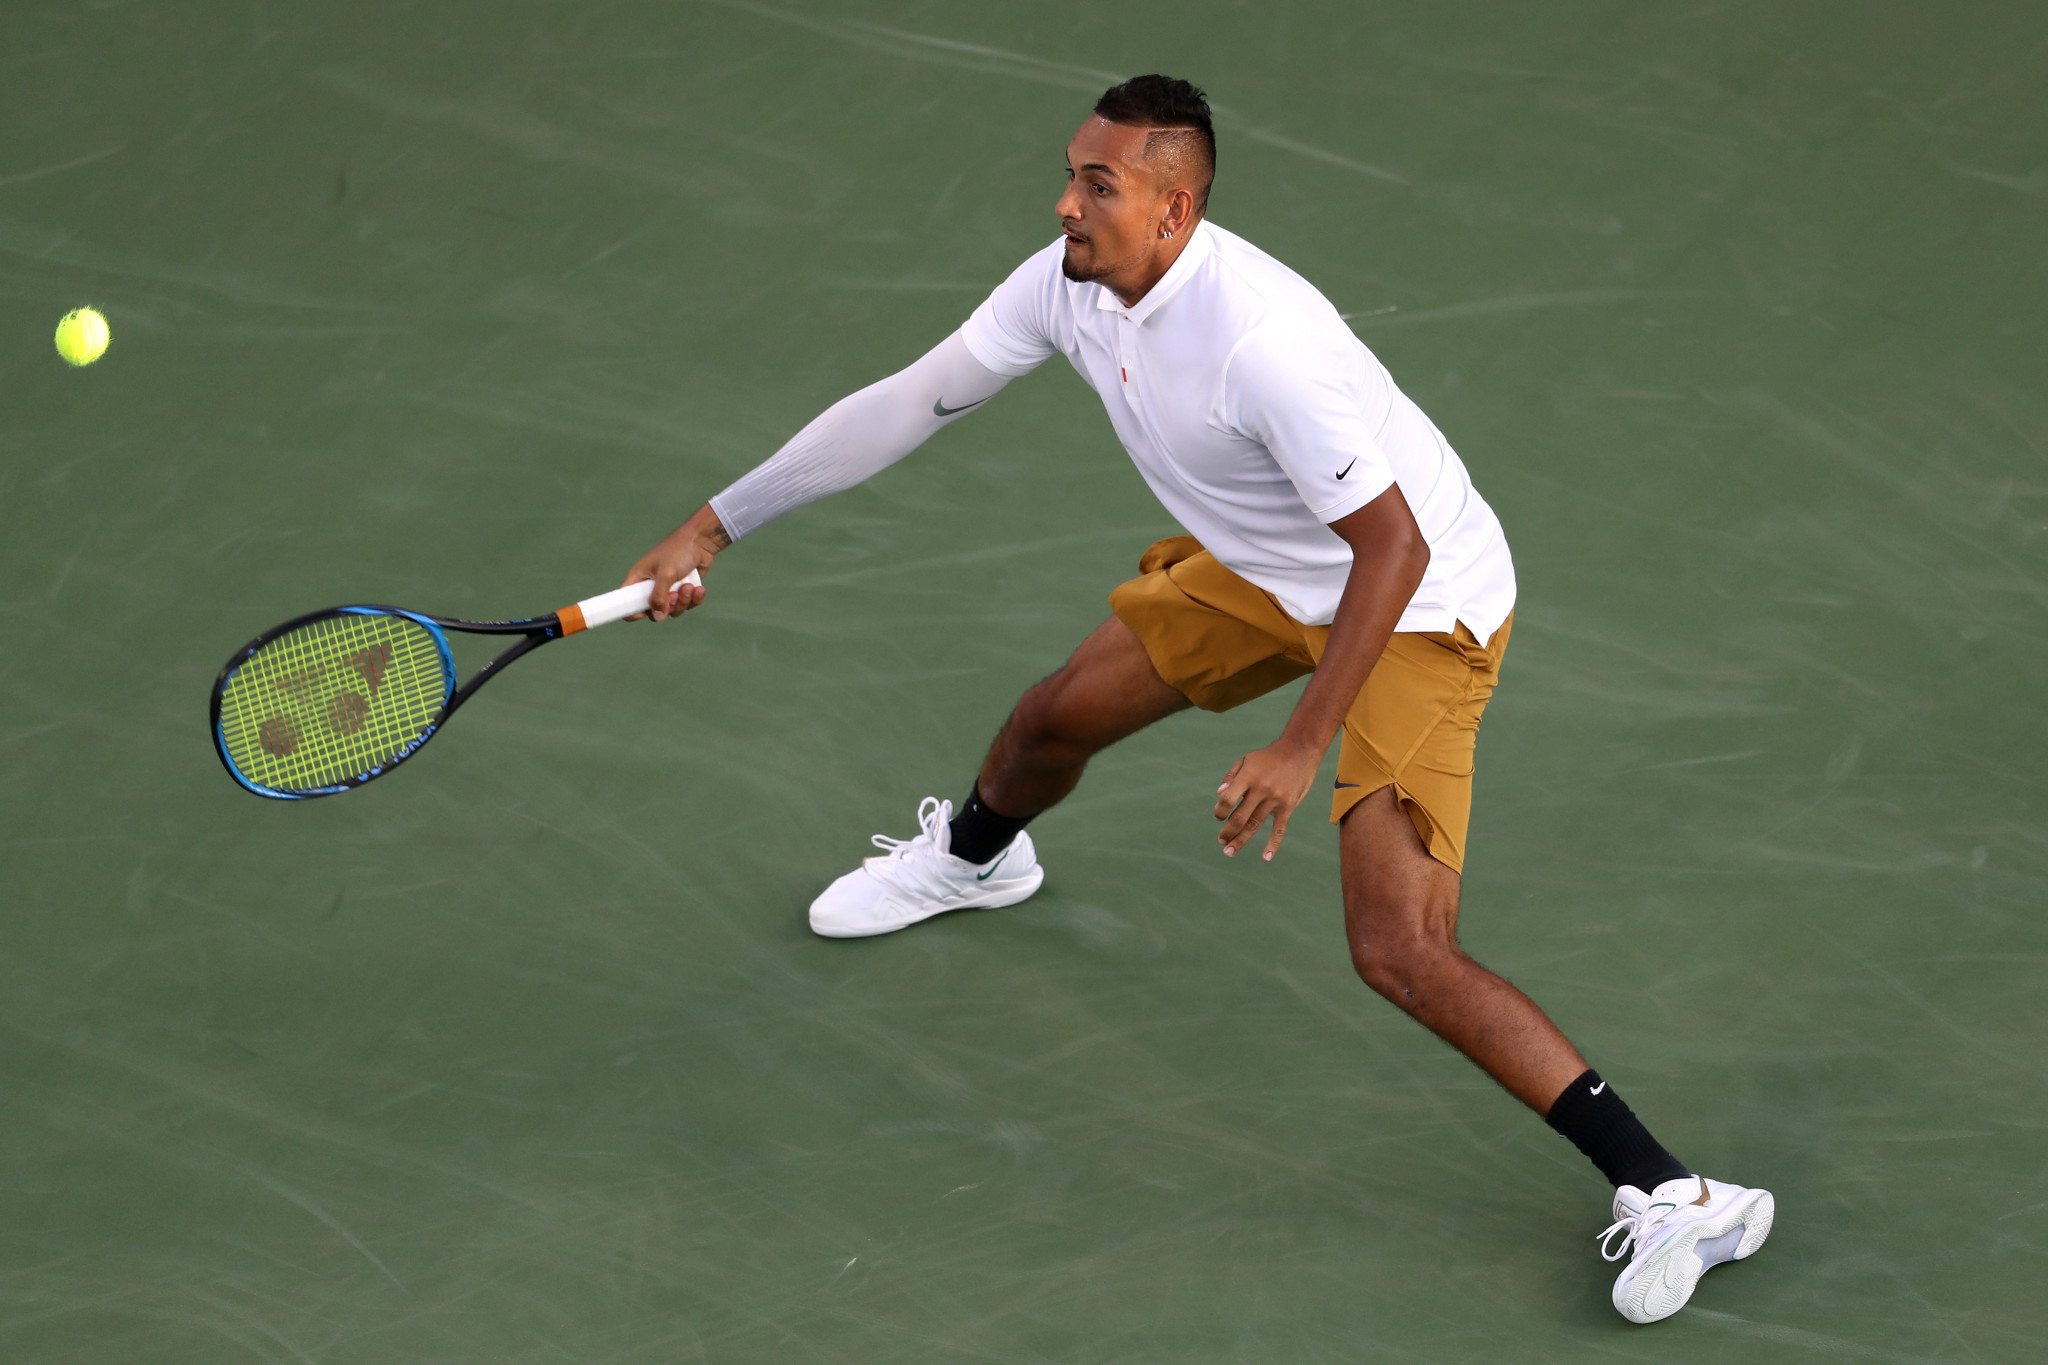 Kyrgios facing more punishment from ATP after latest meltdown at Cincinnati Masters